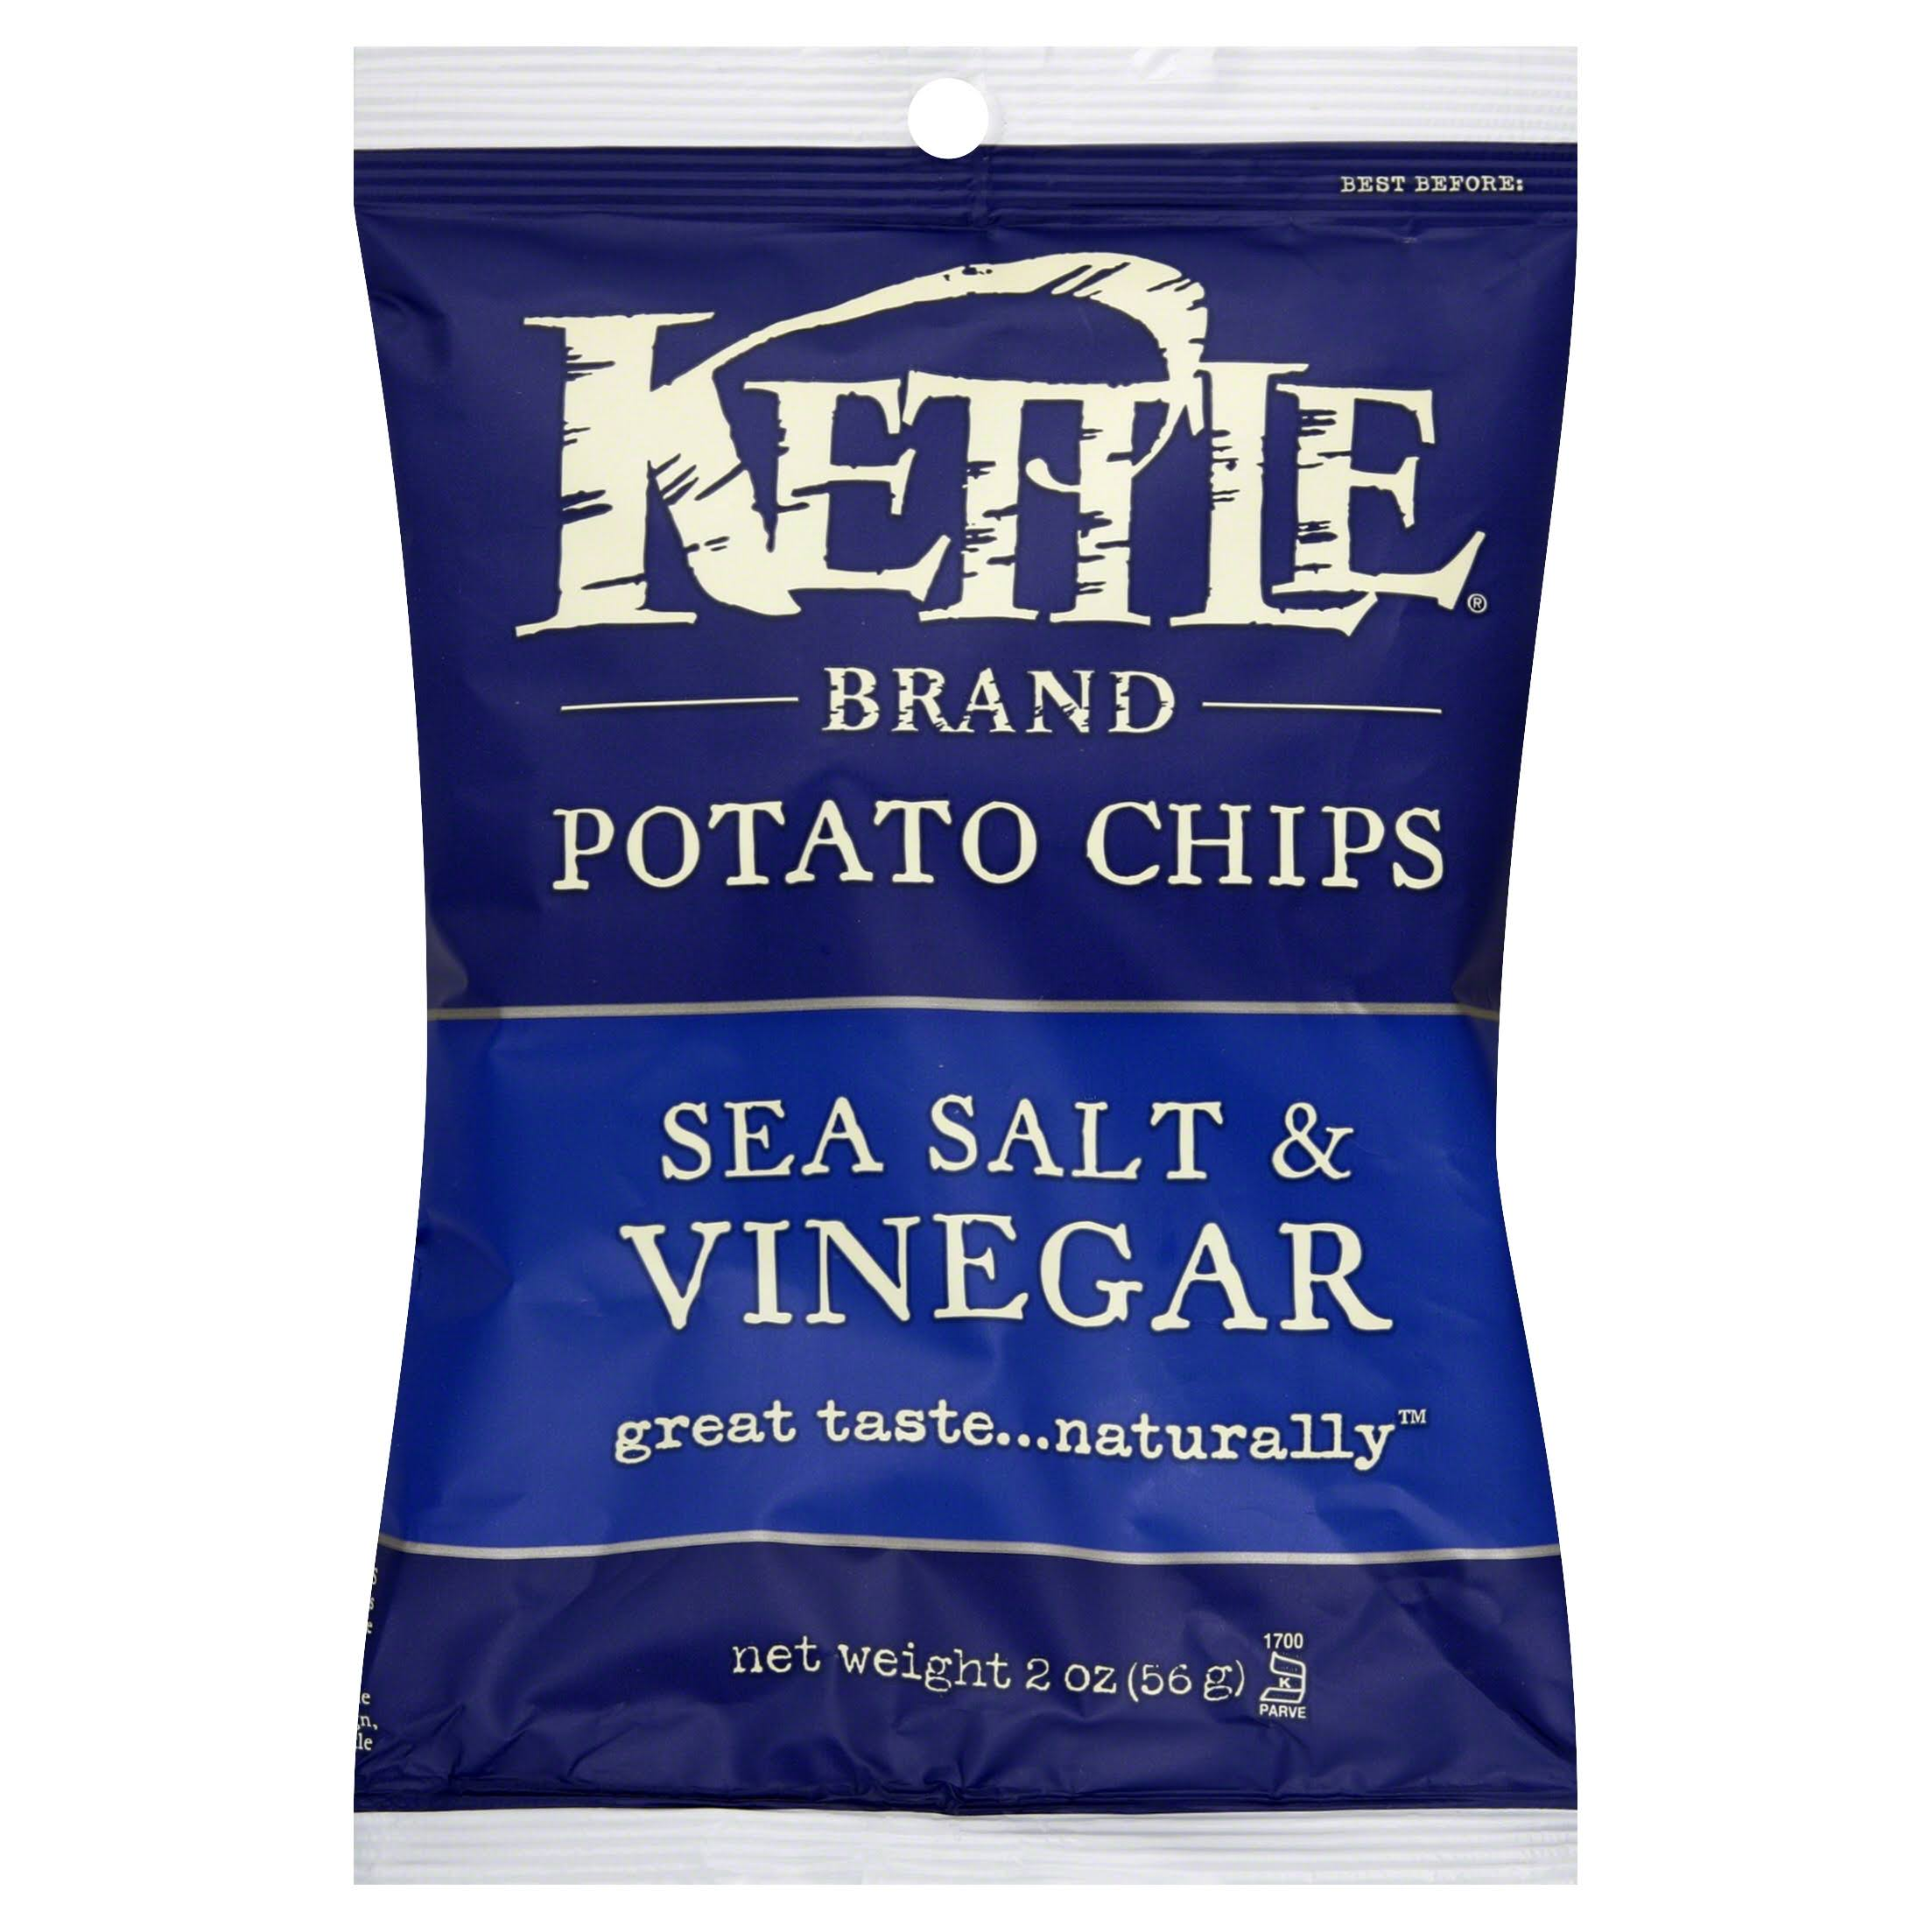 Kettle Potato Chips - Sea Salt & Vinegar